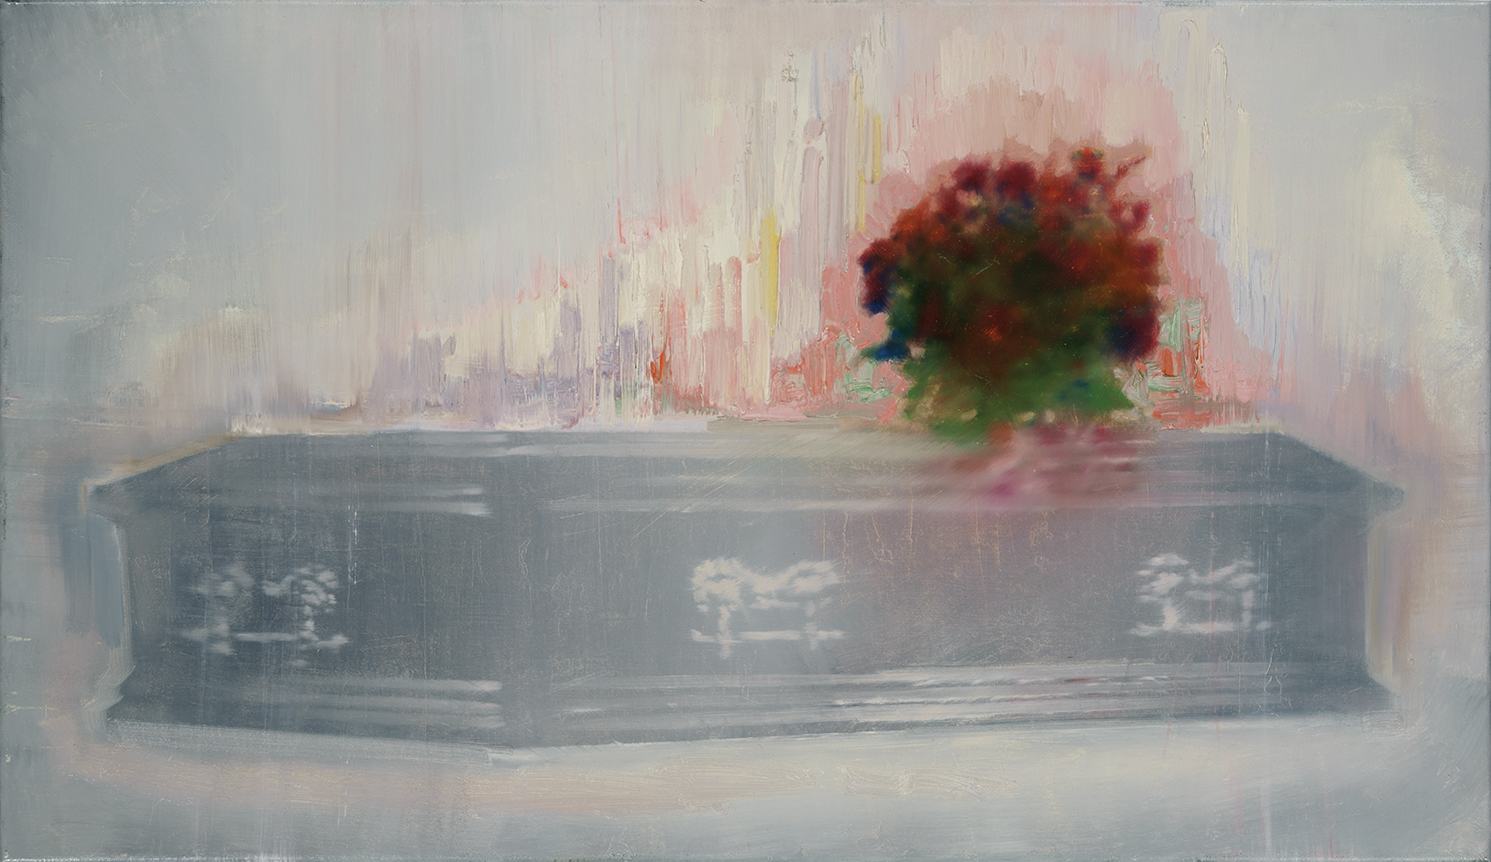 rose coffin, oil on canvas, 40x70cm. 2014